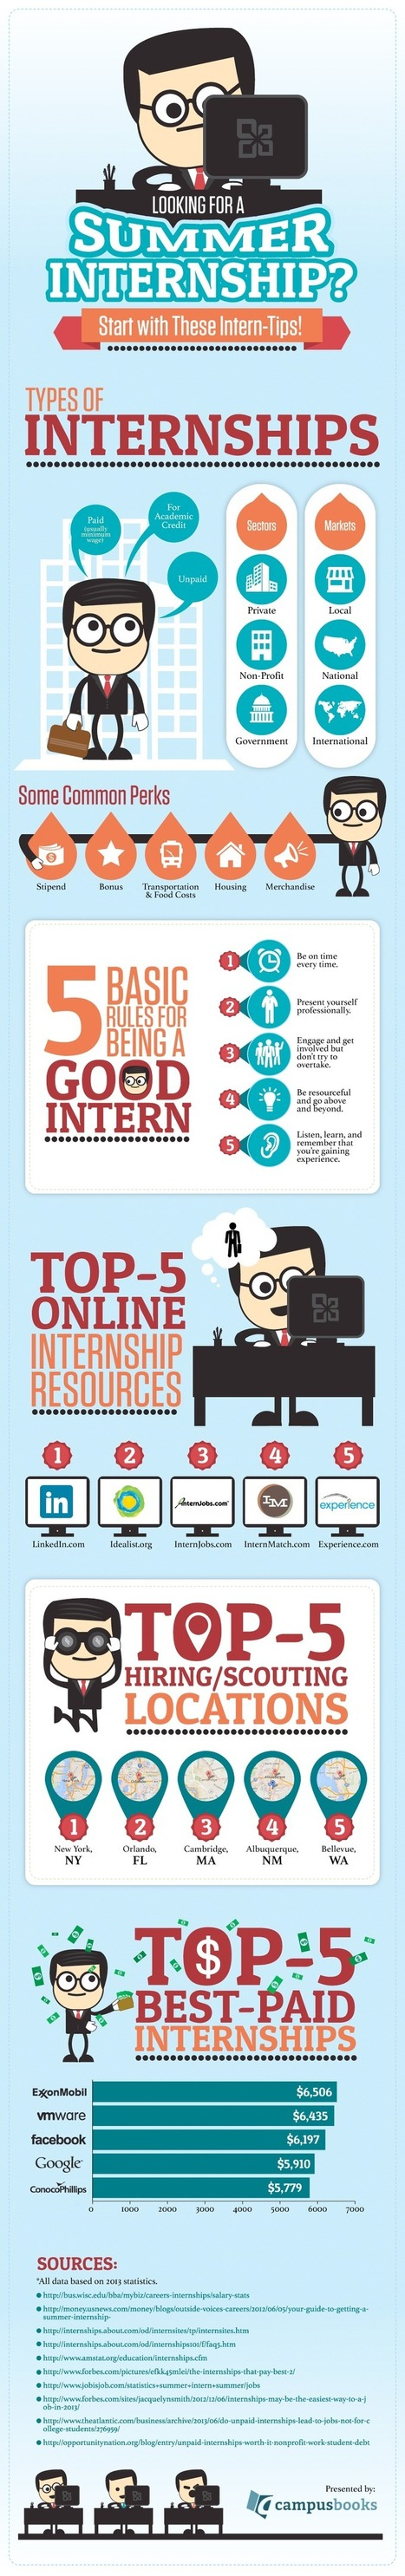 The Student's Guide To Summer Internships Infographic | e-Learning Infographics | AMPR | Scoop.it